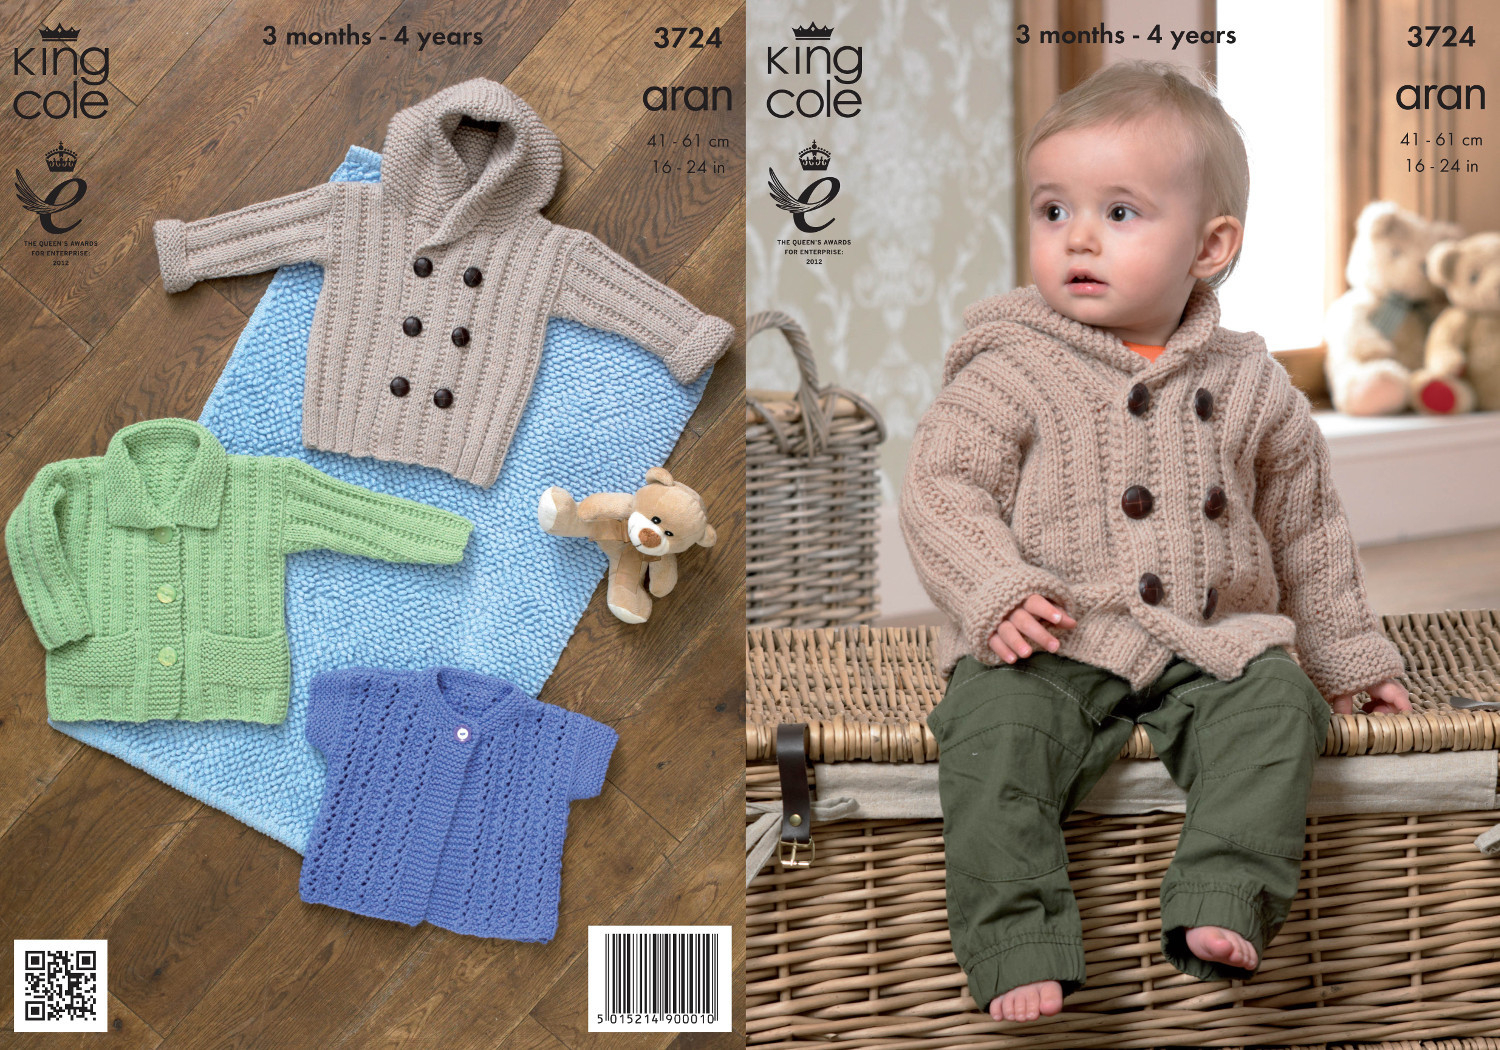 Childrens Aran Knitting Patterns Free Aran Cardigan Knitting Patterns